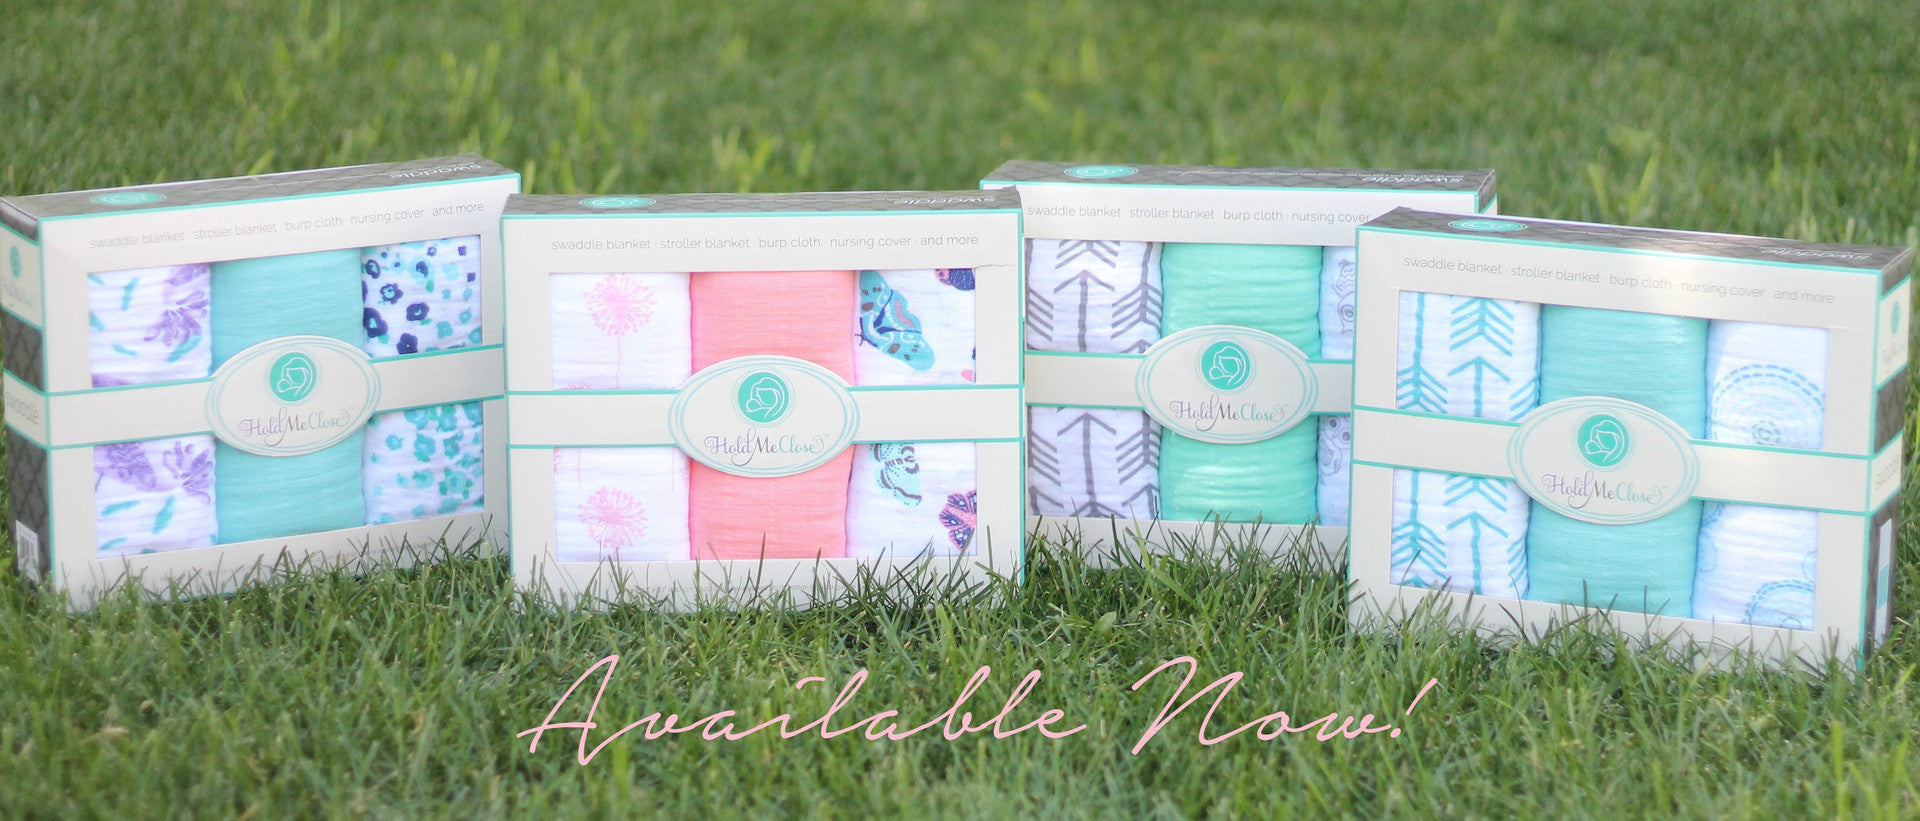 Hold Me Close Swaddle Blanket Sets Available Now